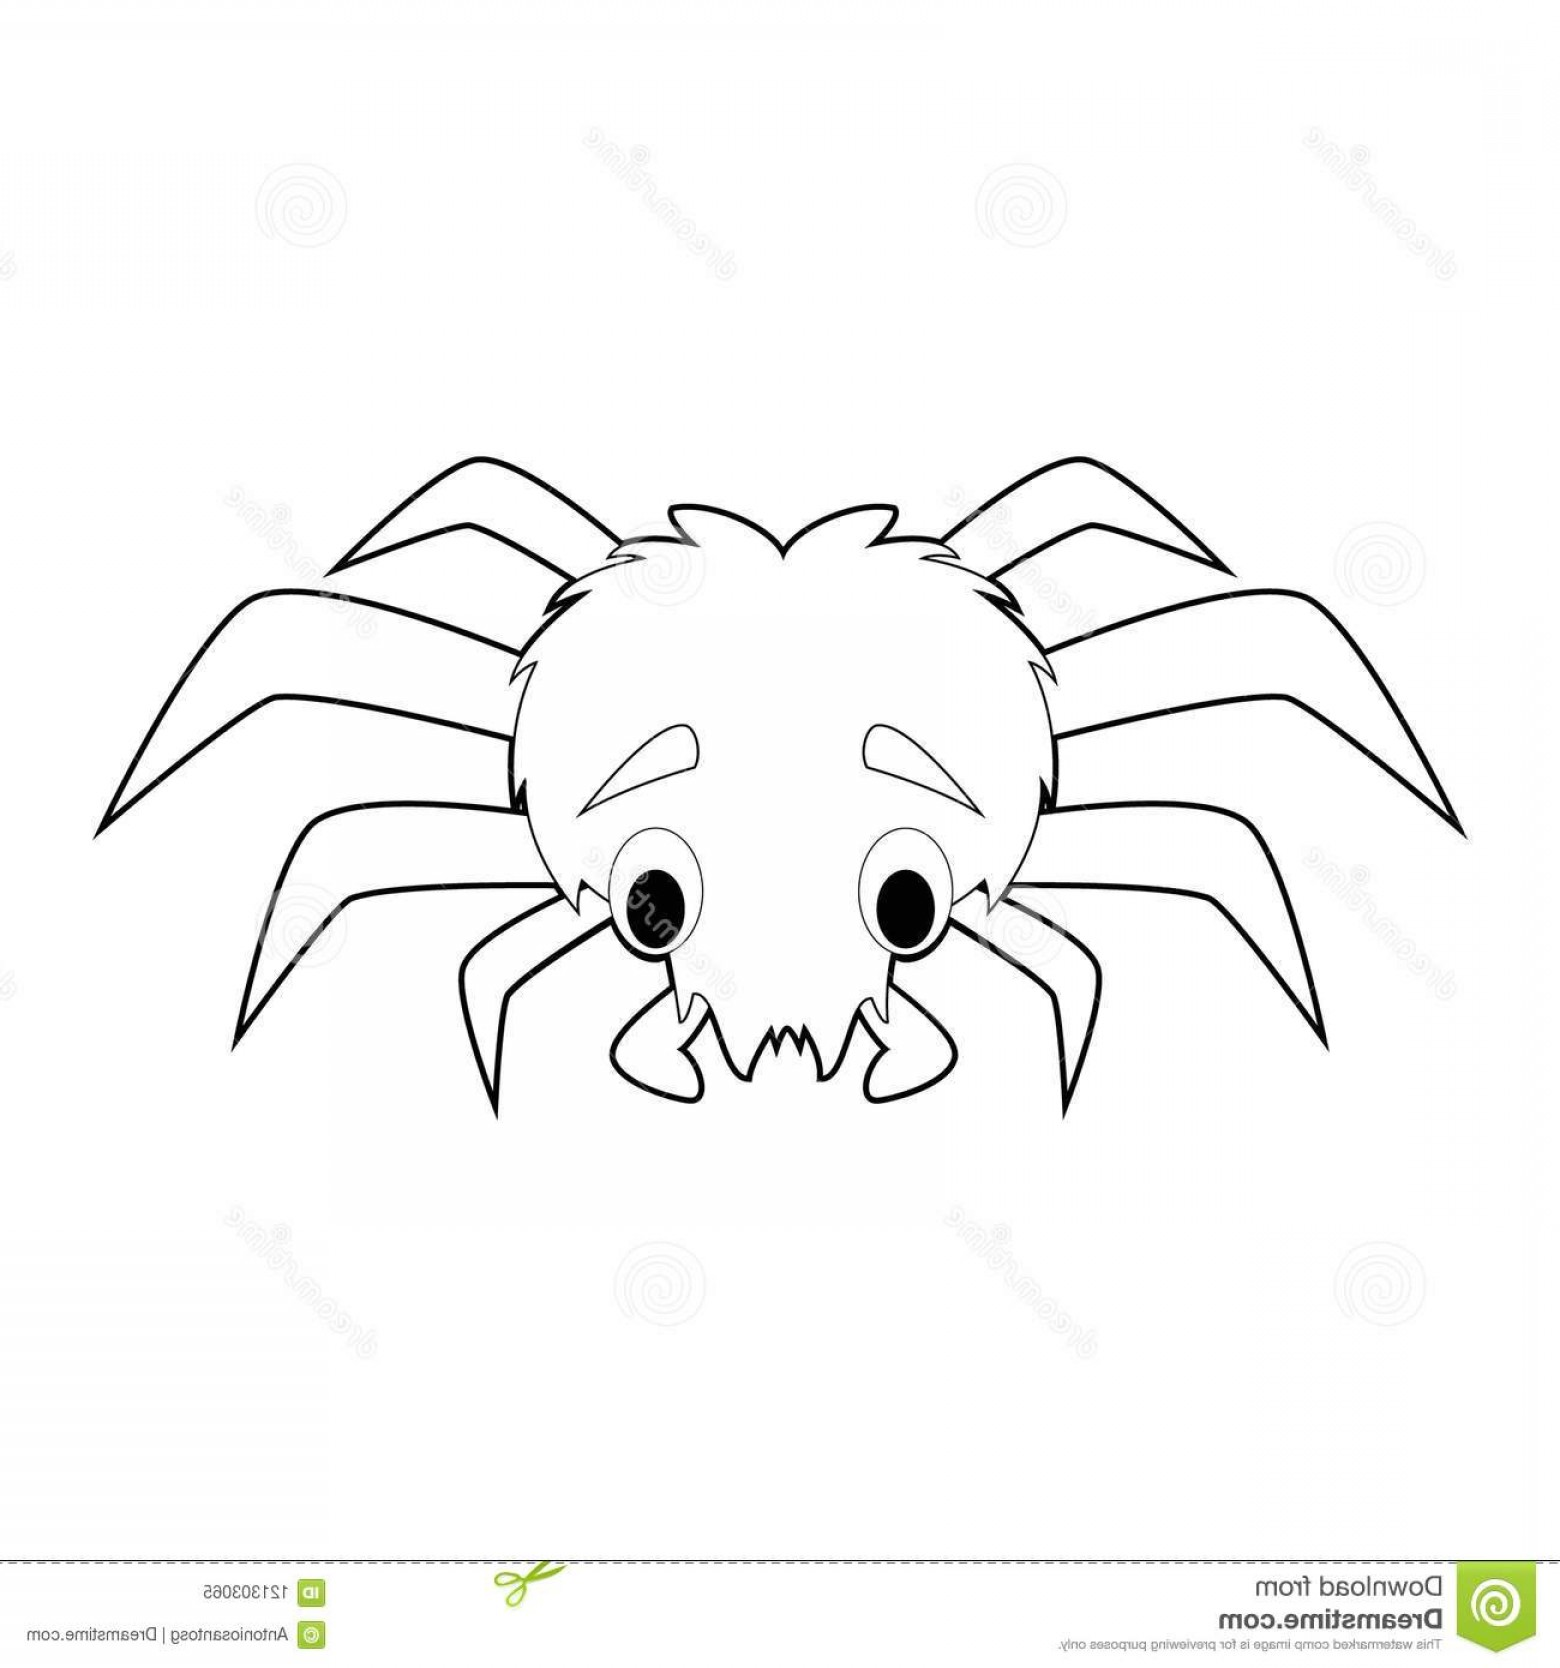 Easy Spider Vector Illustration: Easy Coloring Drawings Animals Little Kids Spider Vector Illustration Easy Coloring Animals Kids Spider Image